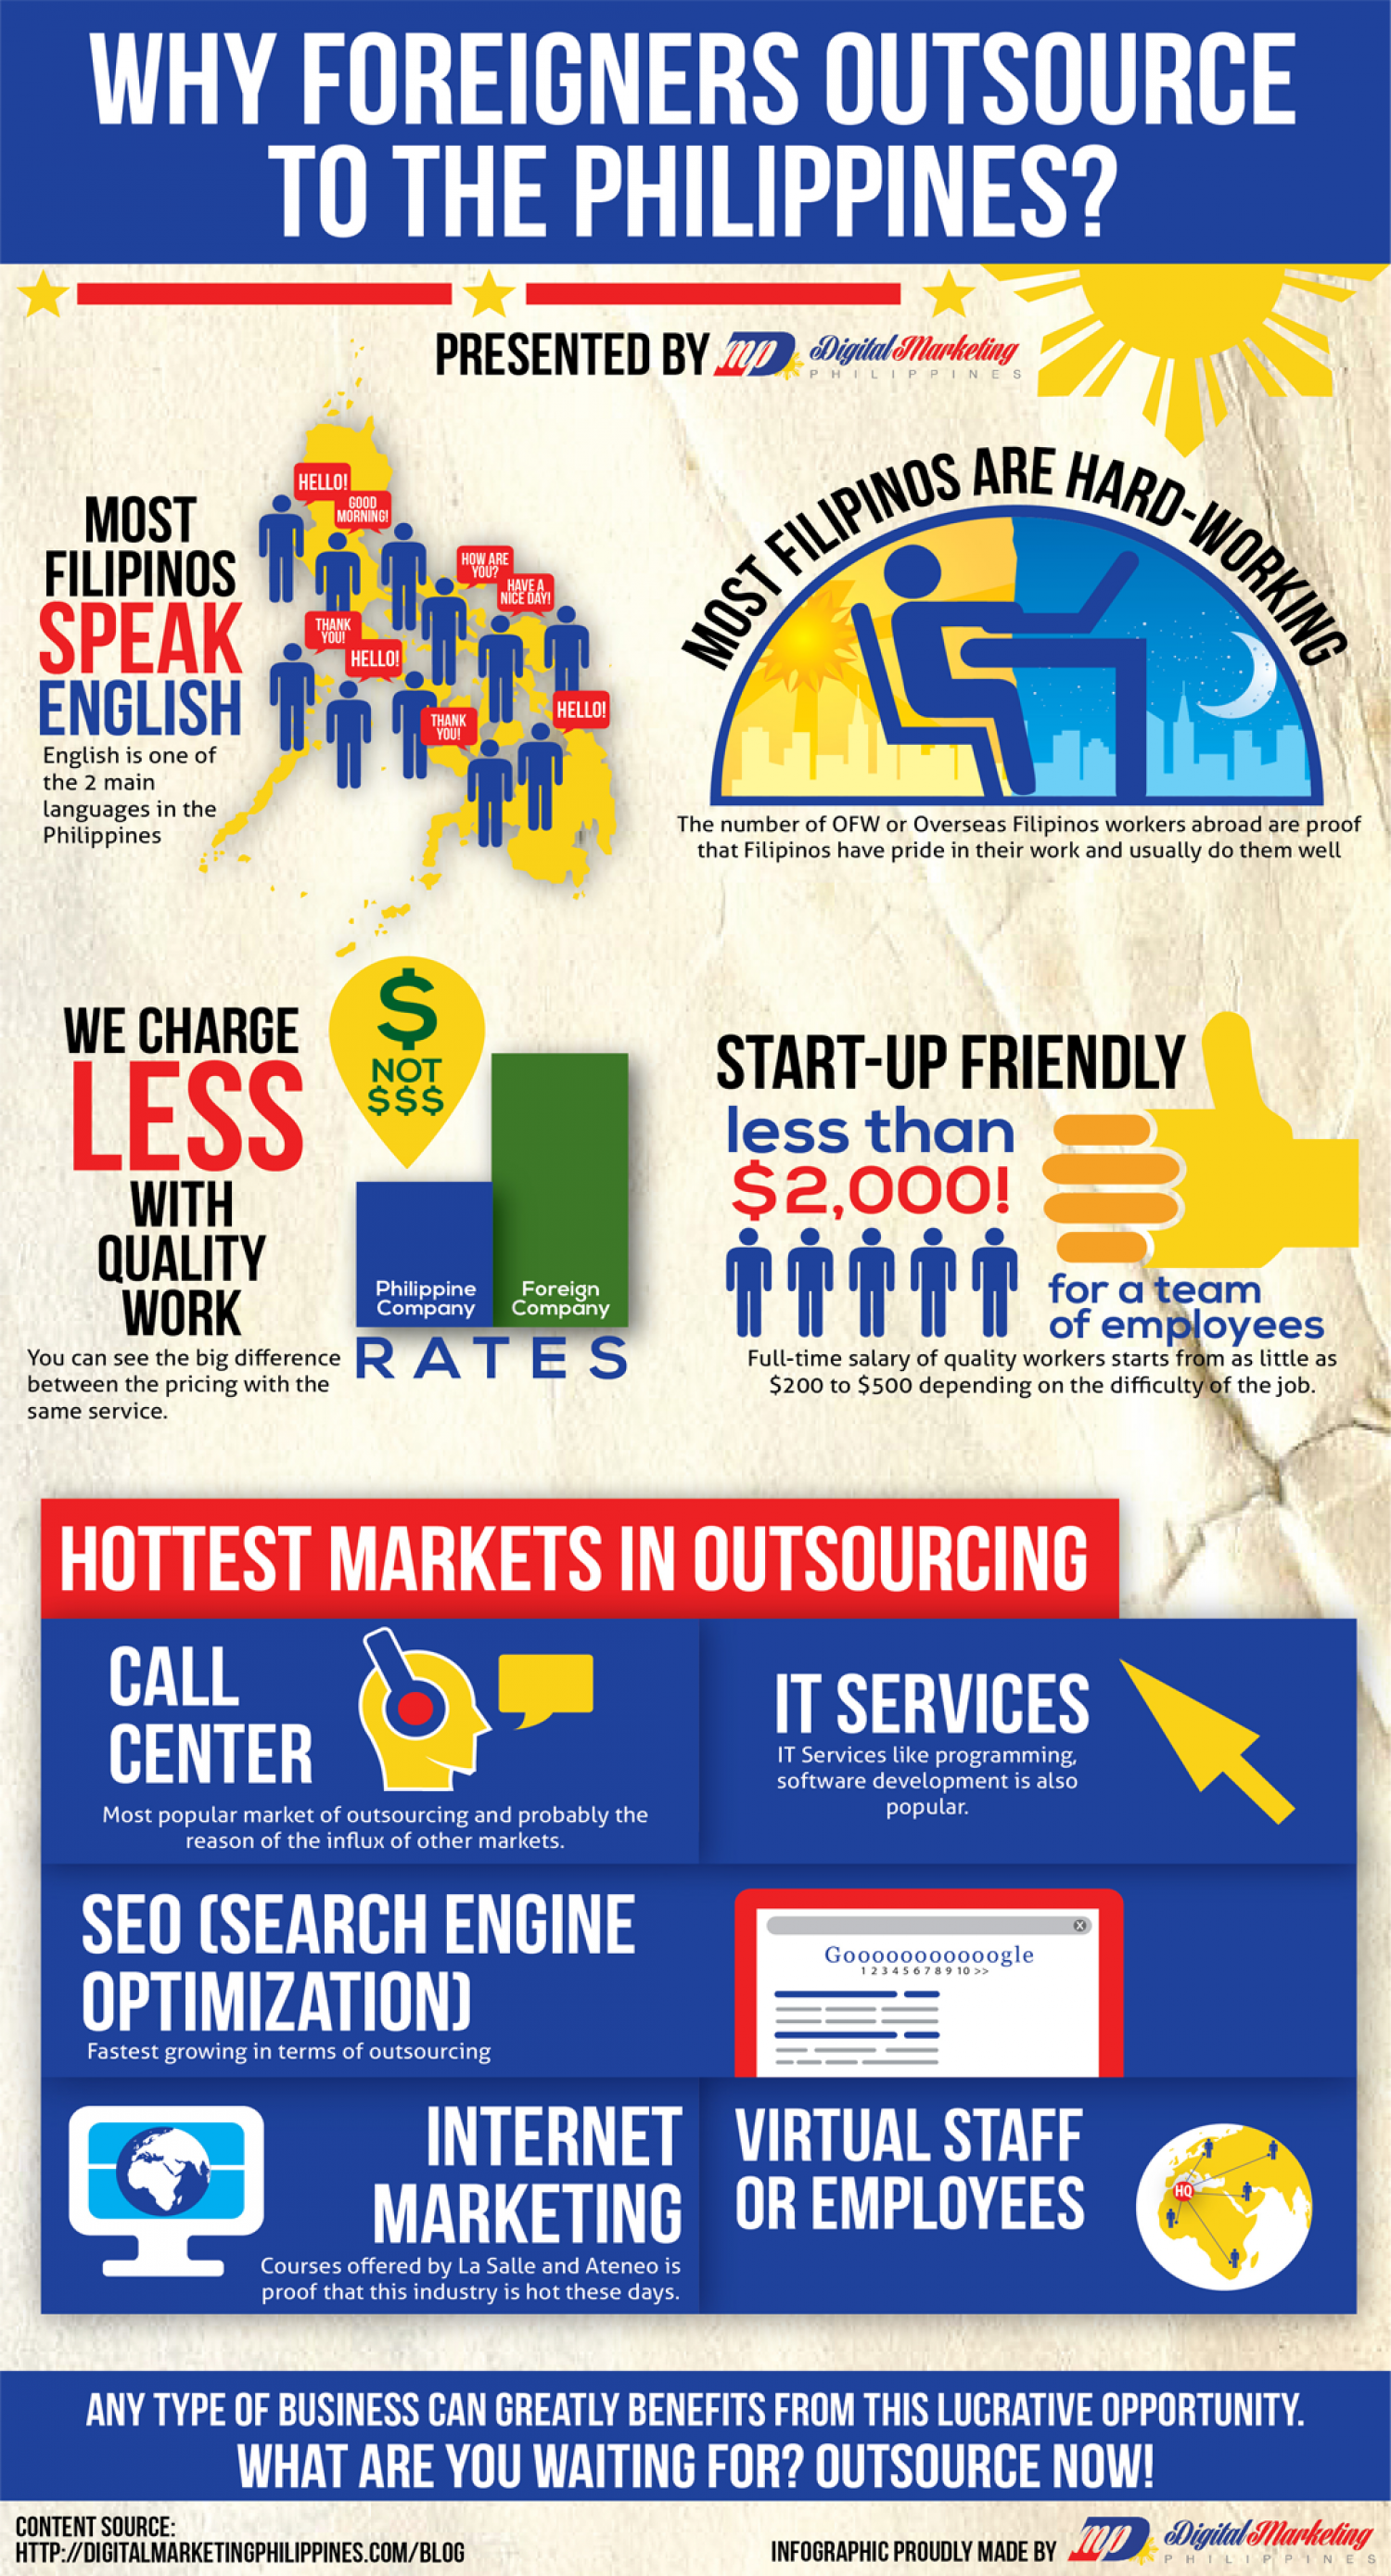 Why Foreigners Outsource to the Philippines? Infographic